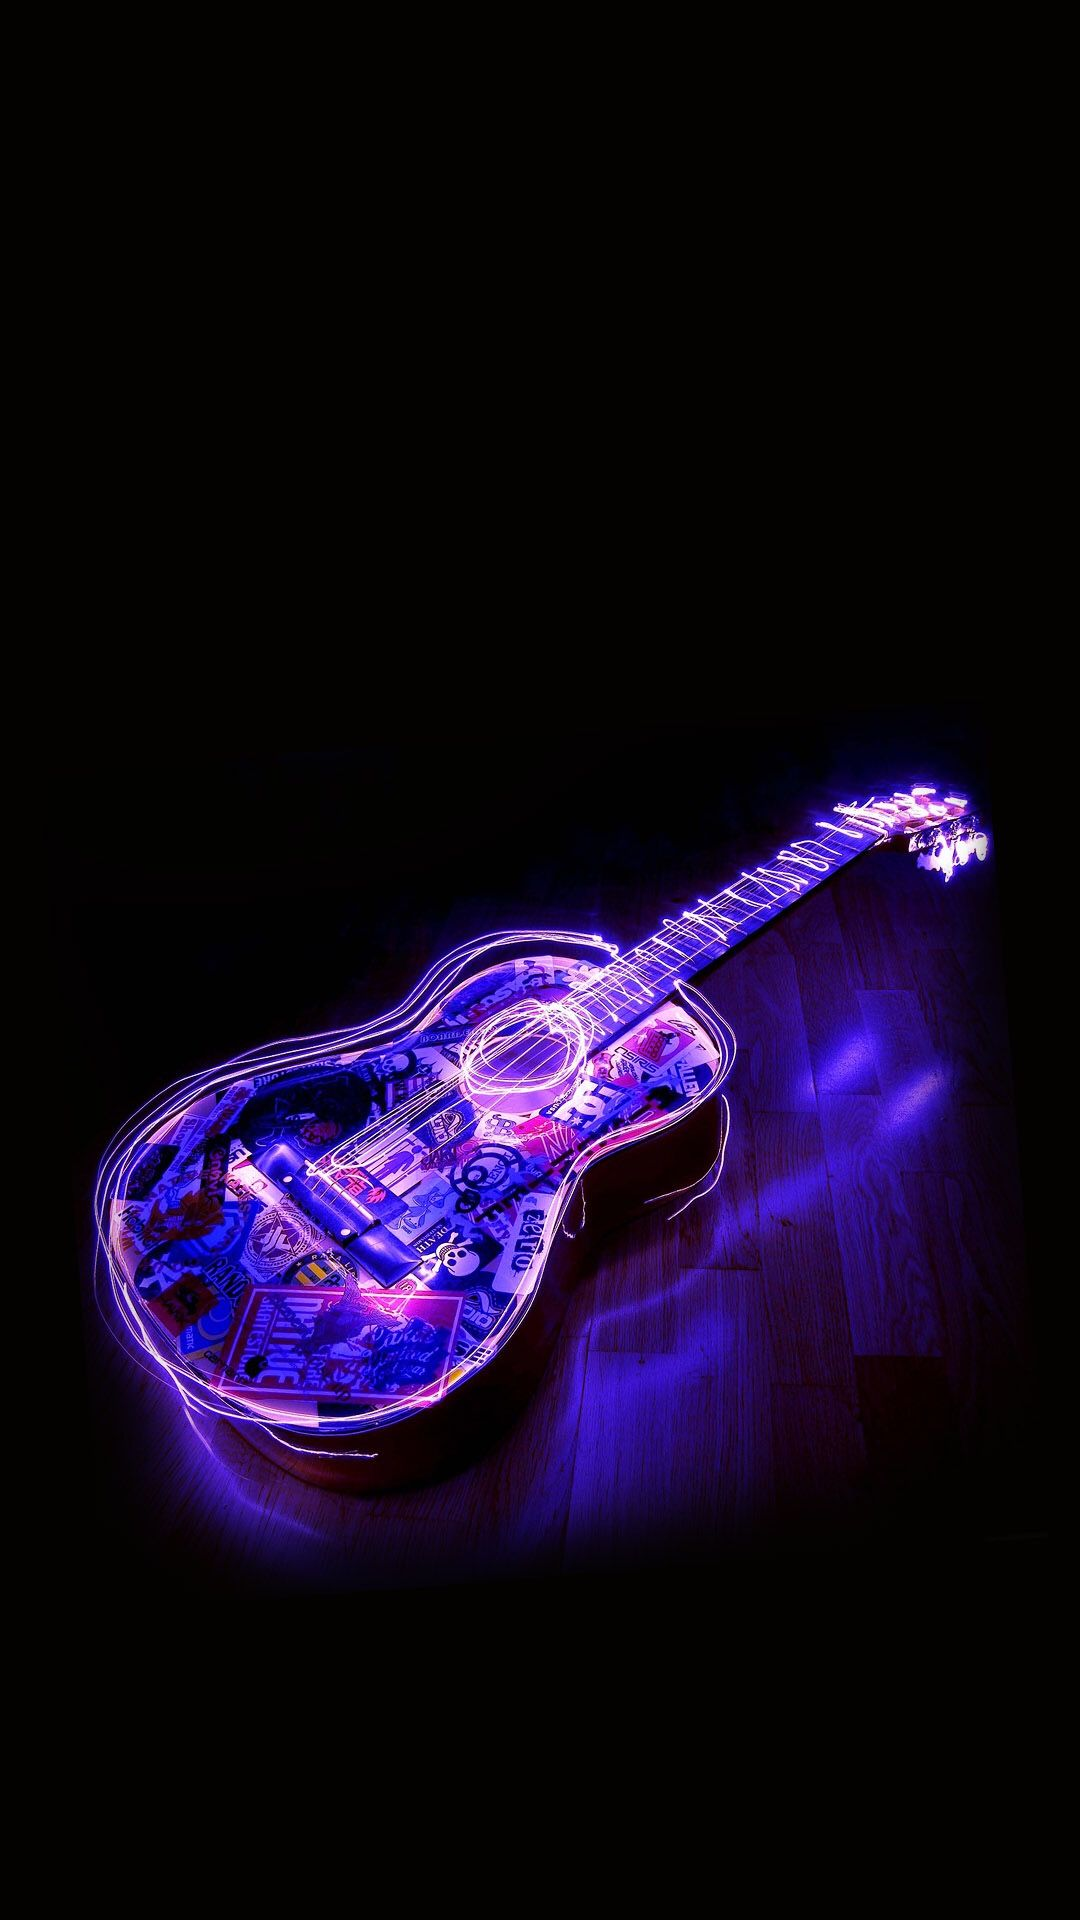 Pin by TRACY BRINKLEY on GUITARS Neon lights photography